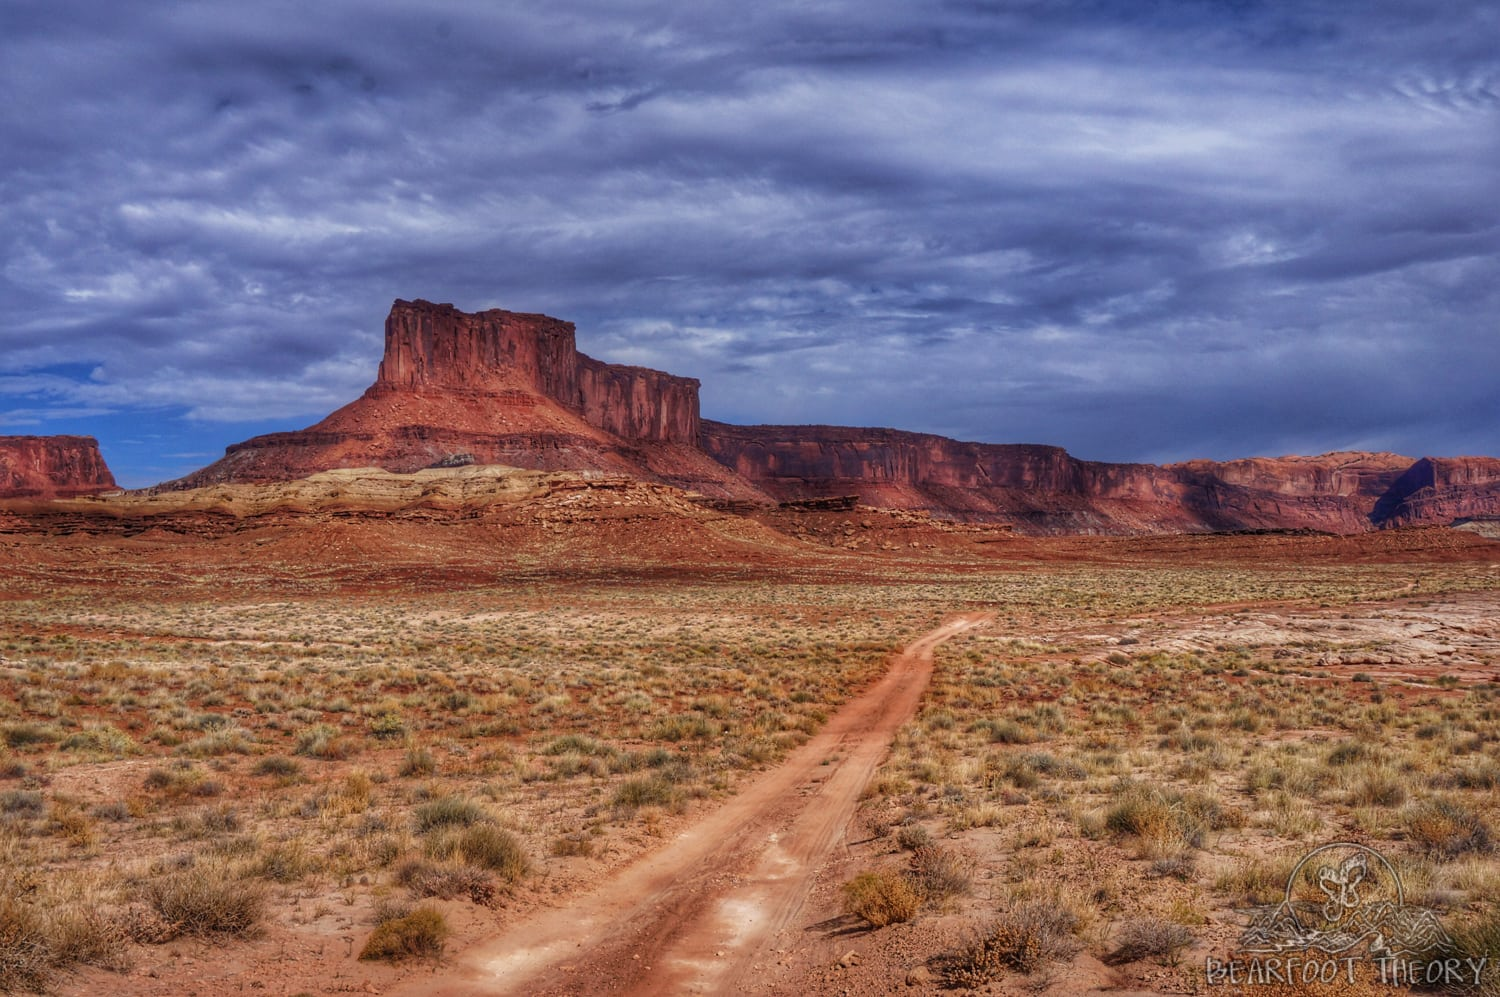 Day 4 biking the White Rim Trail in Canyonlands National Park